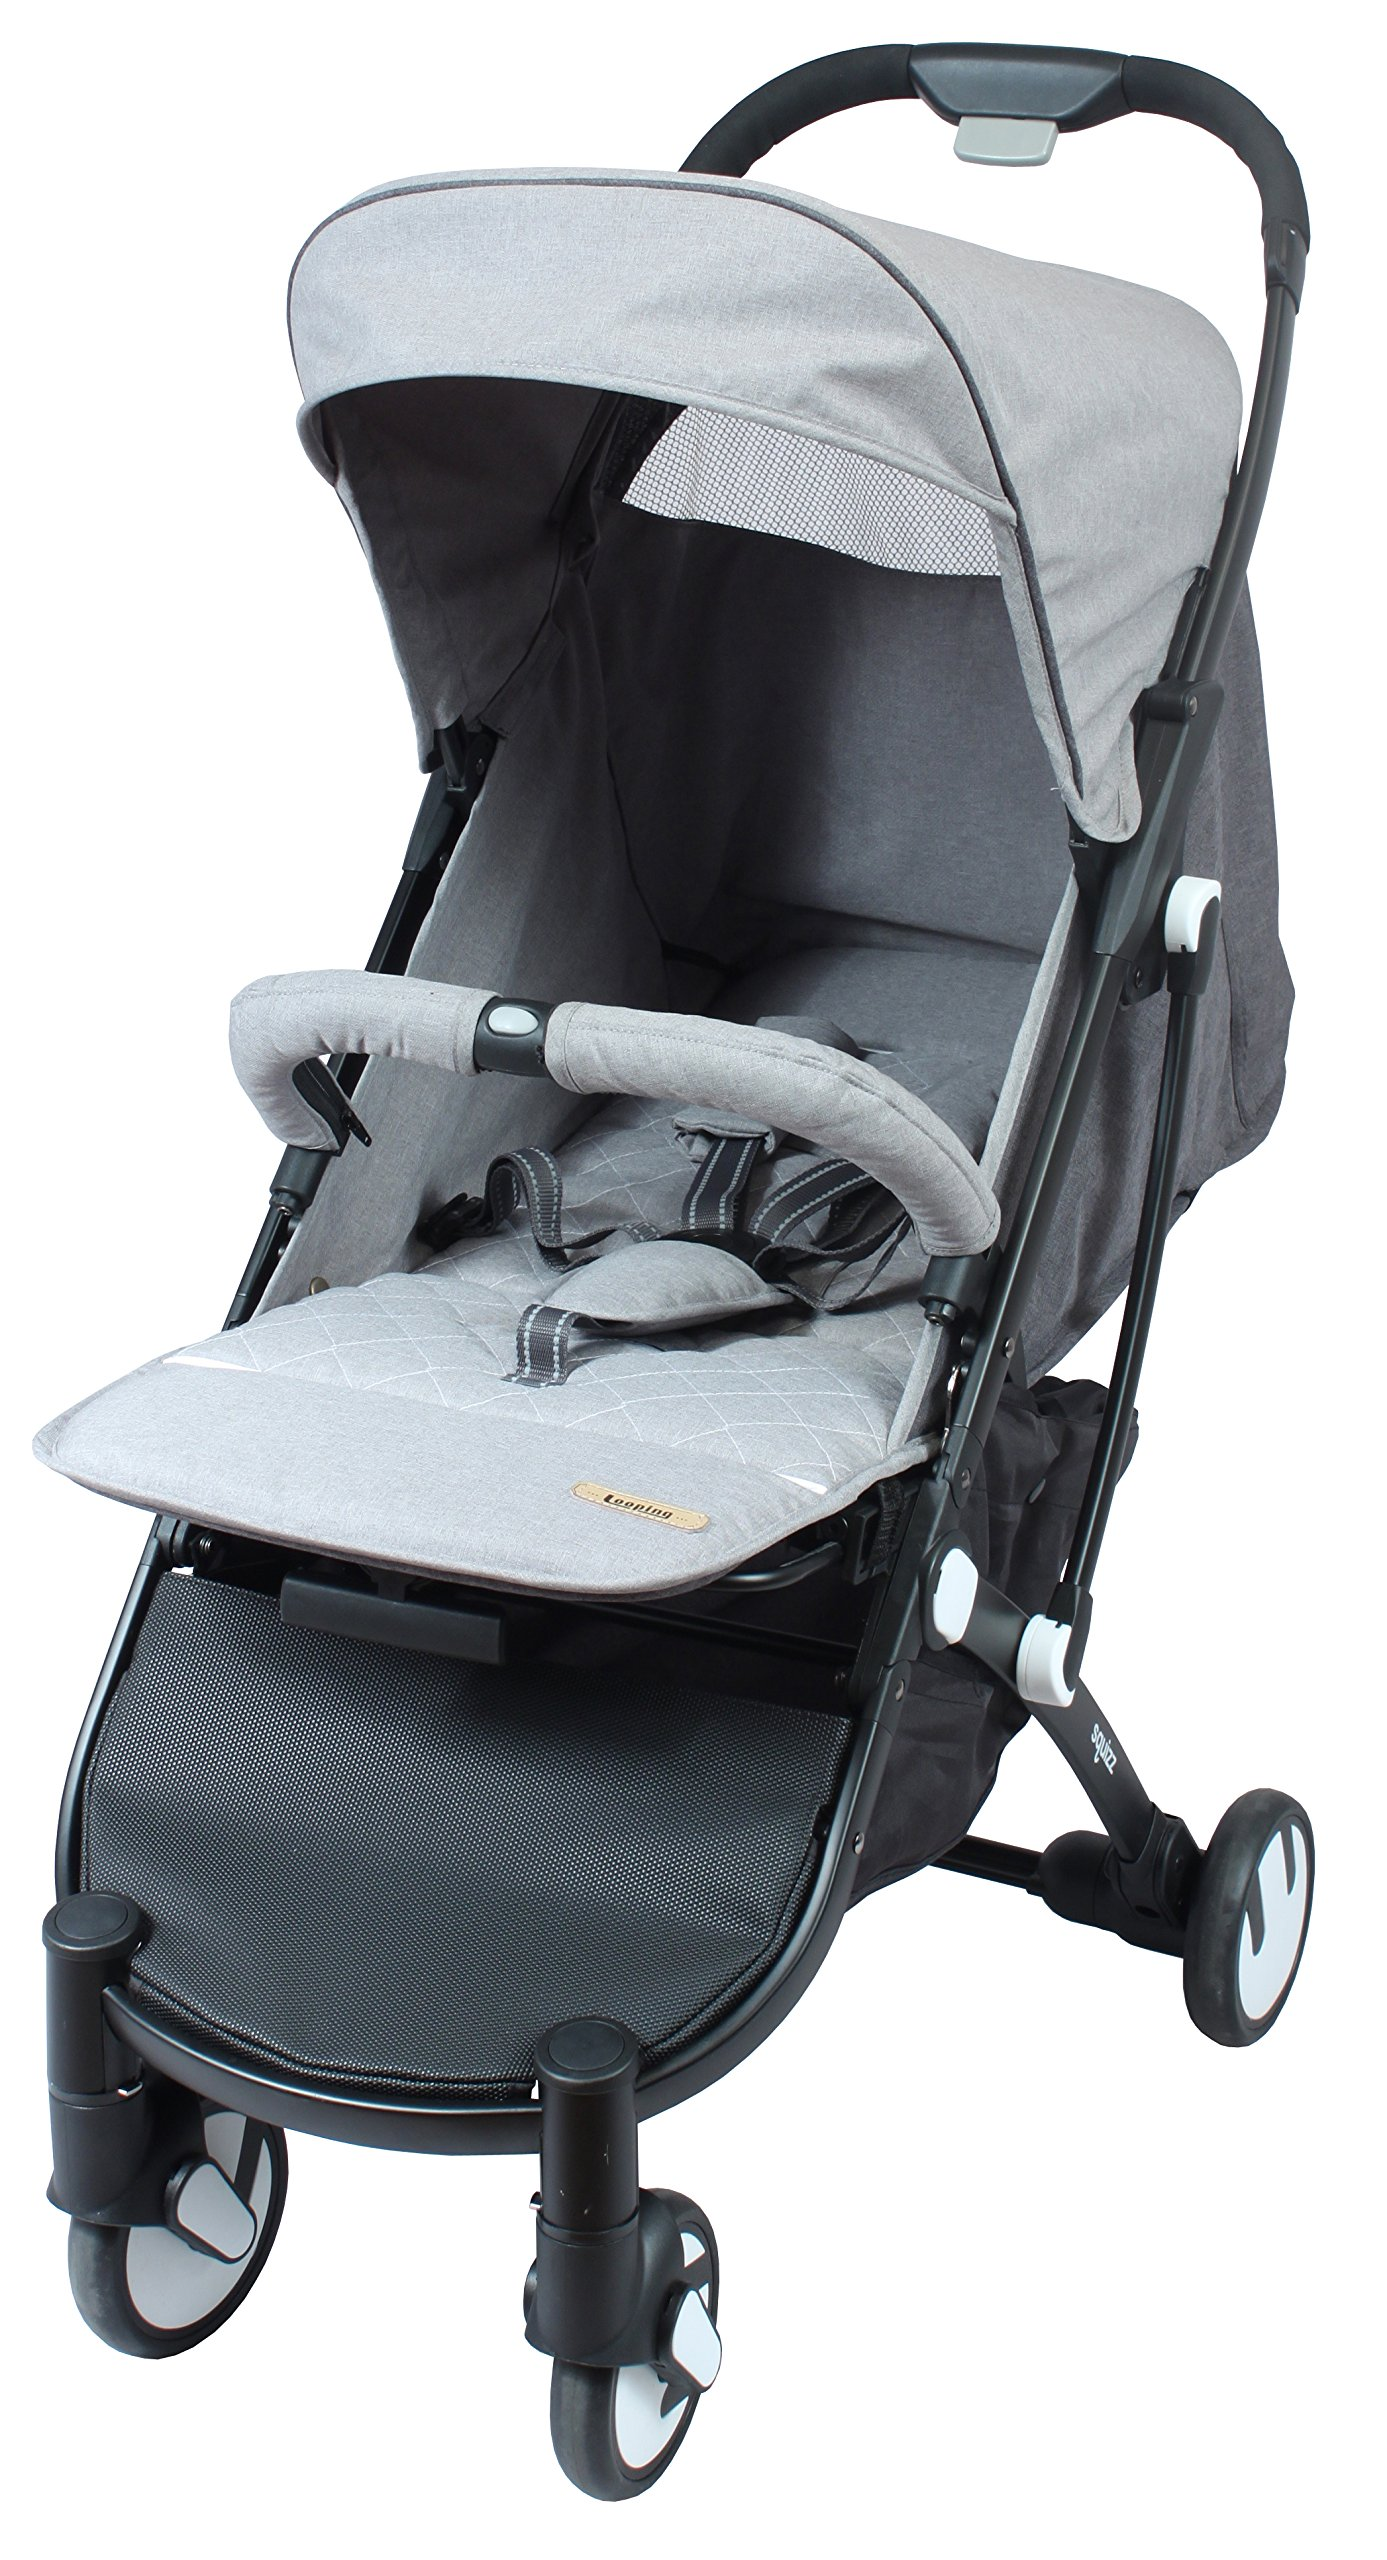 LOOPING Poussette compacte Squizz 2 Z15 - Gris chiné Looping Very compact babies's pushchair from birth up to 15kg. Smart pull-along handle that enables you to pull the pushchair. Folds up and unfolds with one hand. Large canopy to better protect your baby- Removable and opening bumper bar to keep your baby in place. 3